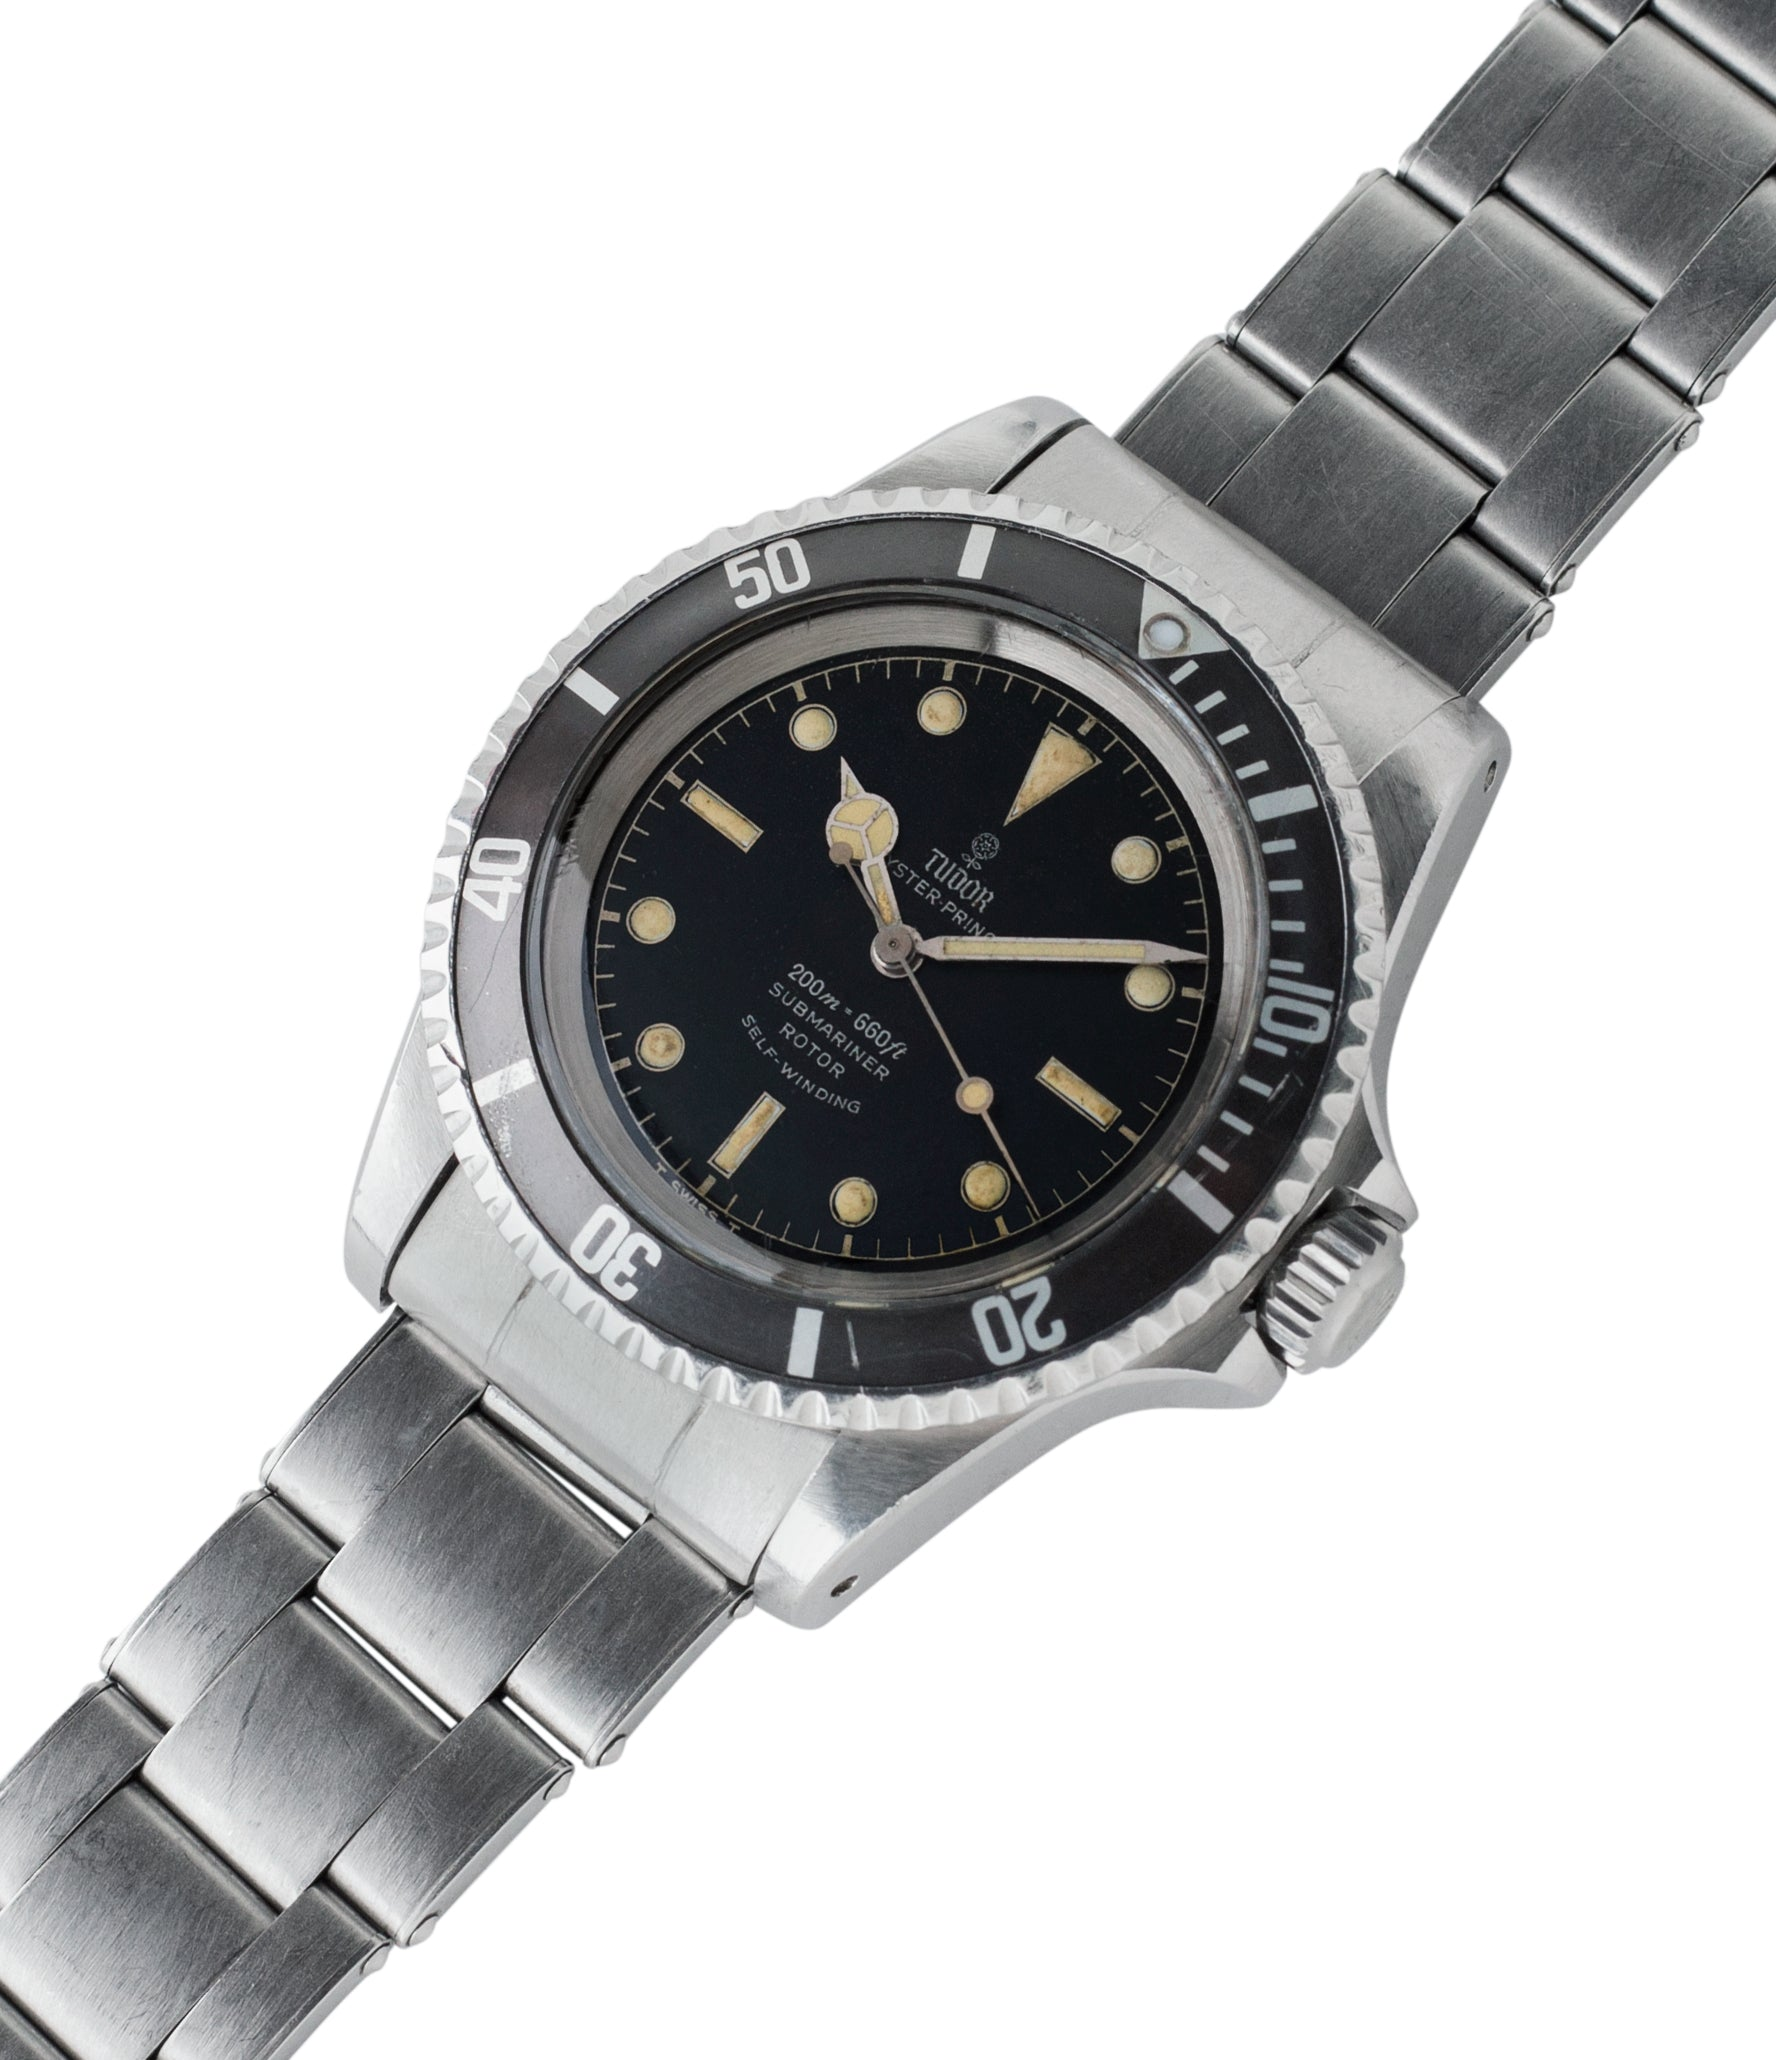 shop Tudor Submariner 7928 Oyster Prince Cal. 390 automatic sport watch at A Collected Man London online vintage watch specialist UK